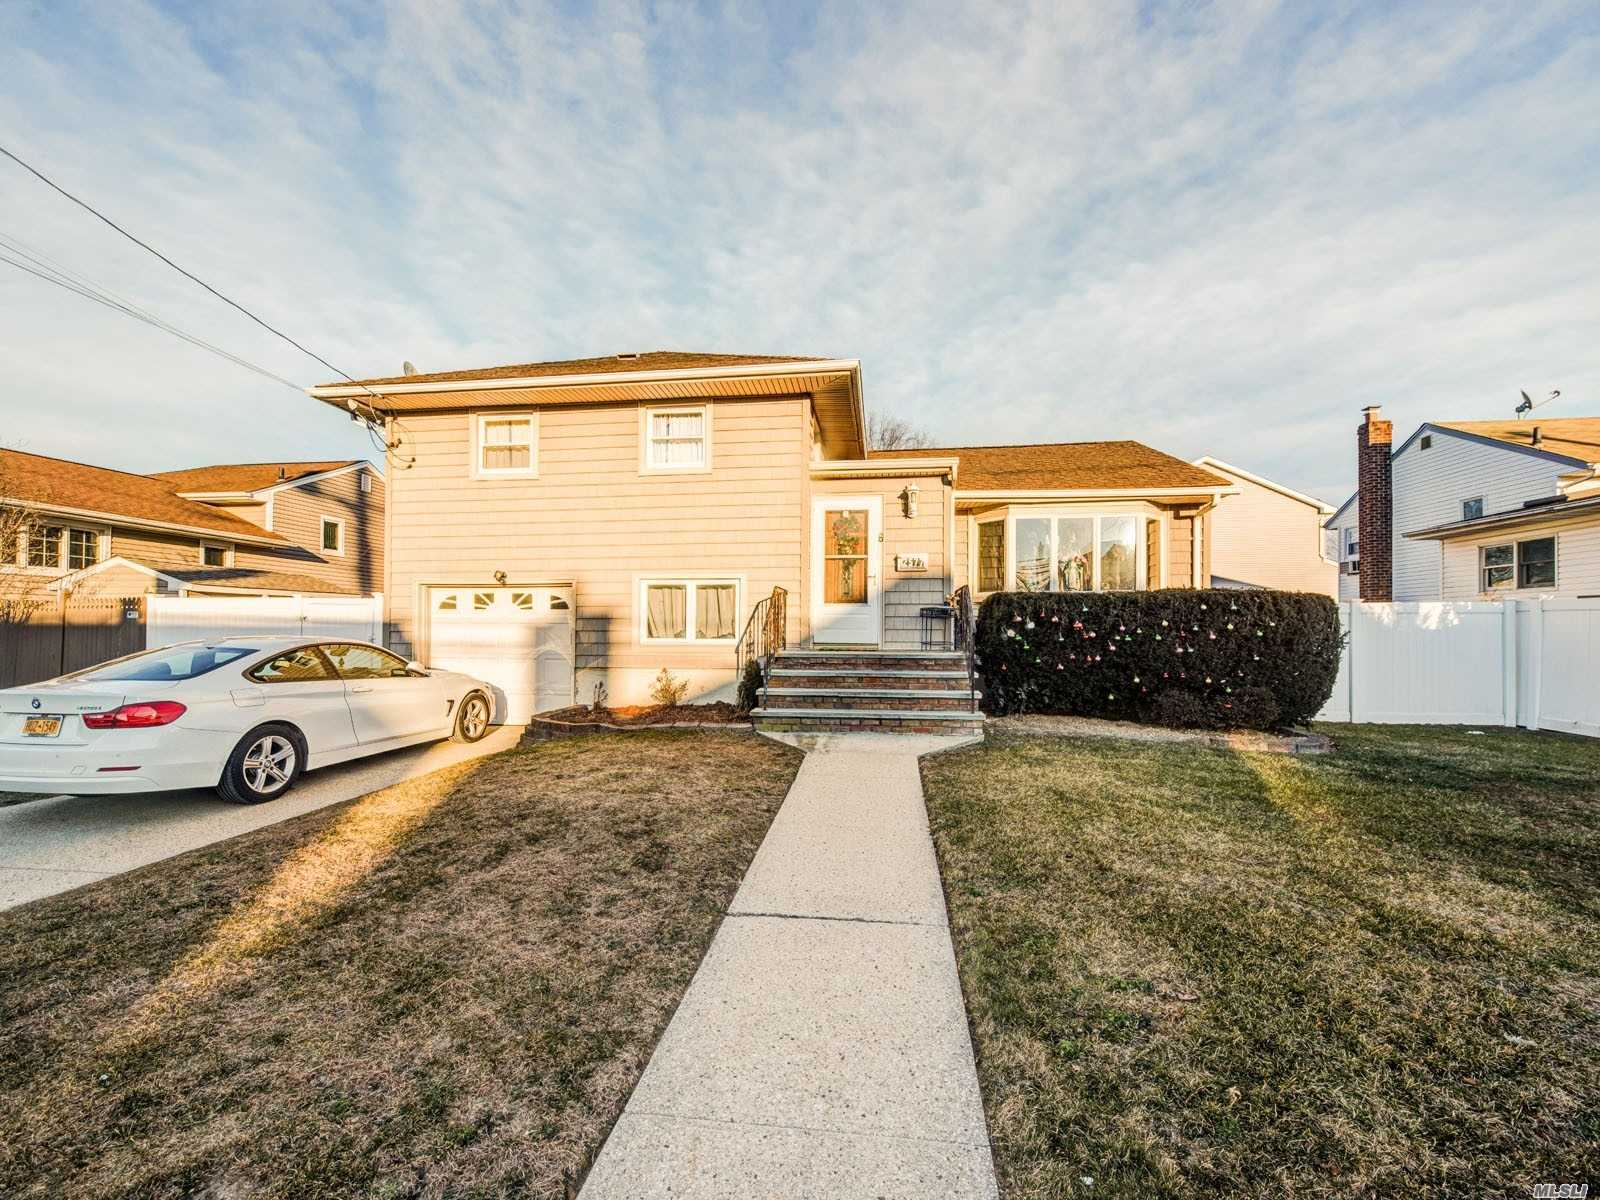 Renovated 4 Bedroom, 2 Full Bath Split Level Single Home Features Custom Granite Kitchen, Updated Baths, New Heating System, New Central Air Conditioning, New Siding, New Windows, New P.V.C. Fencing. The House Is Located At Great Area - Just 30 Minutes To Brooklyn, 40 Minutes To Manhattan.